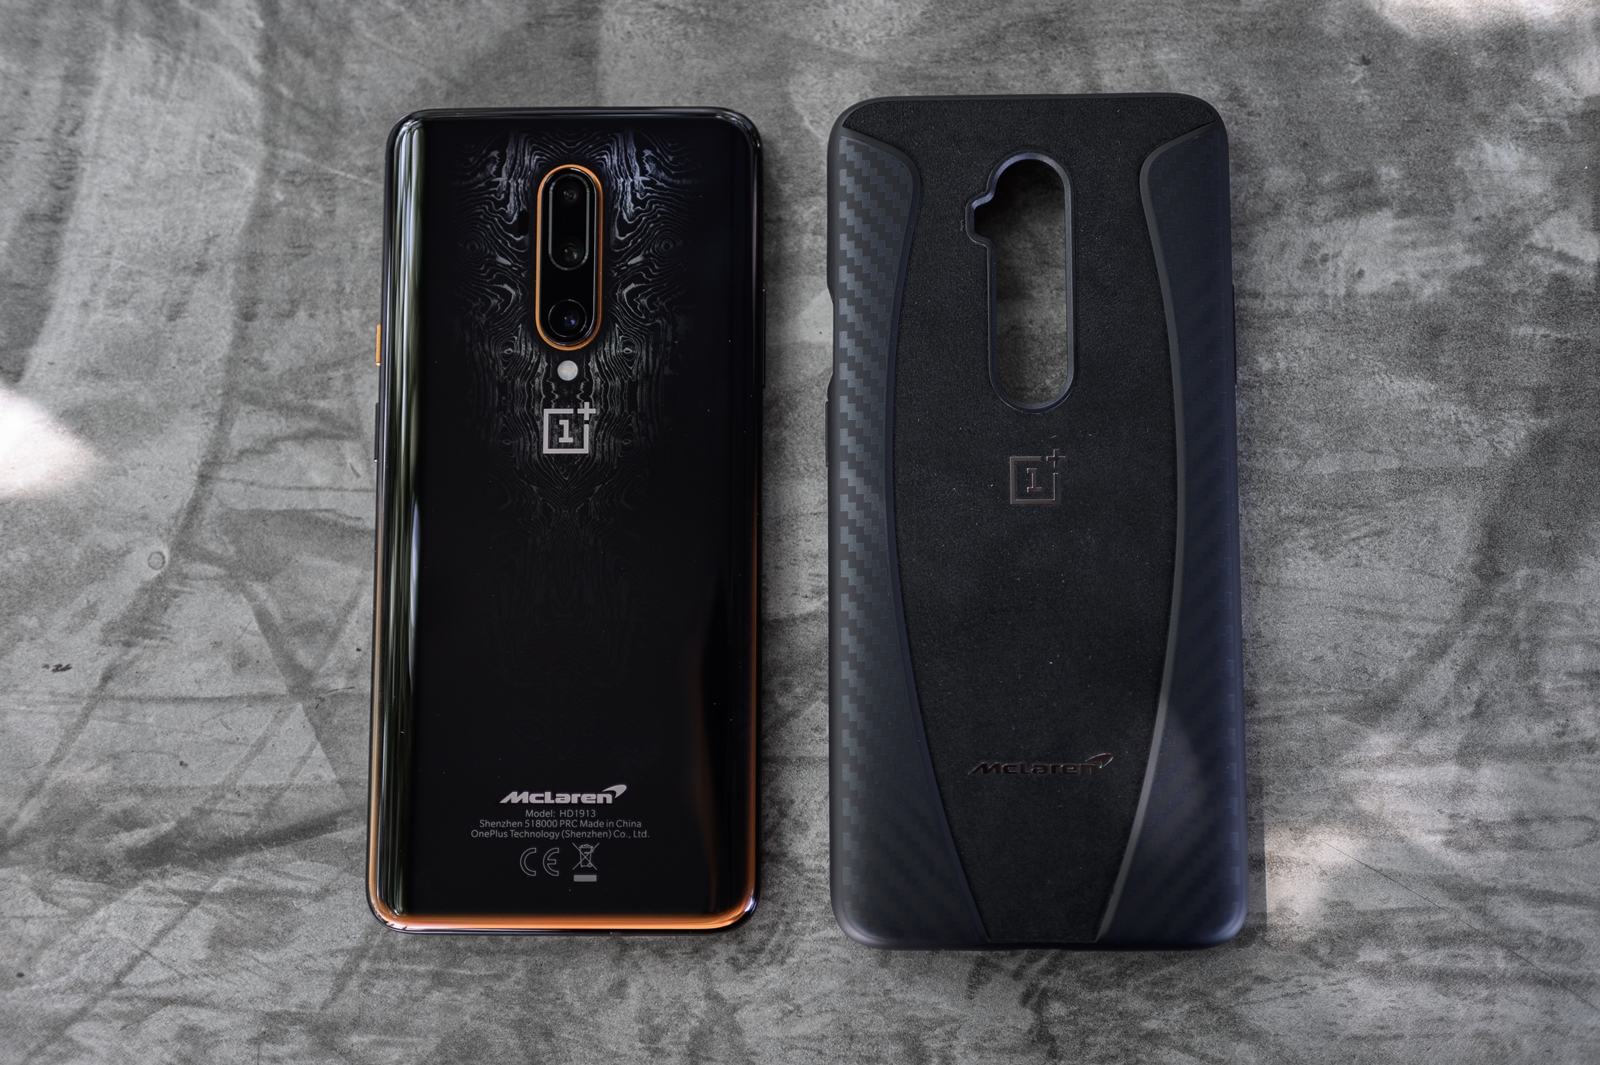 OnePlus 7T Pro McLaren Limited Edition + Case